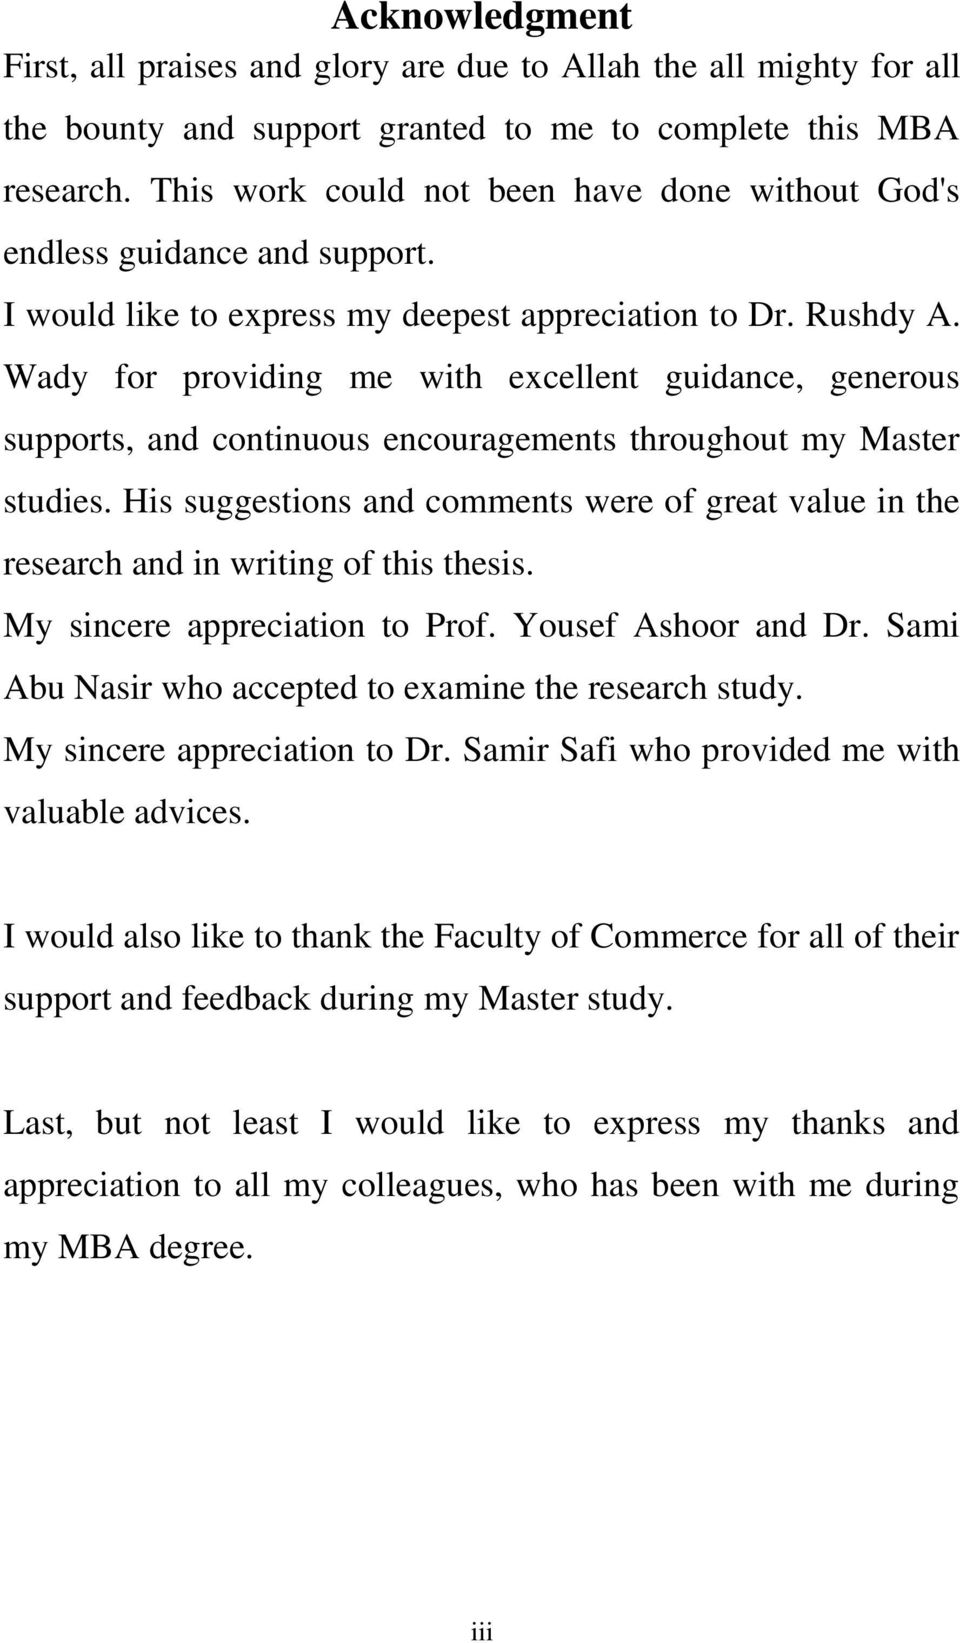 Wady for providing me with excellent guidance, generous supports, and continuous encouragements throughout my Master studies.